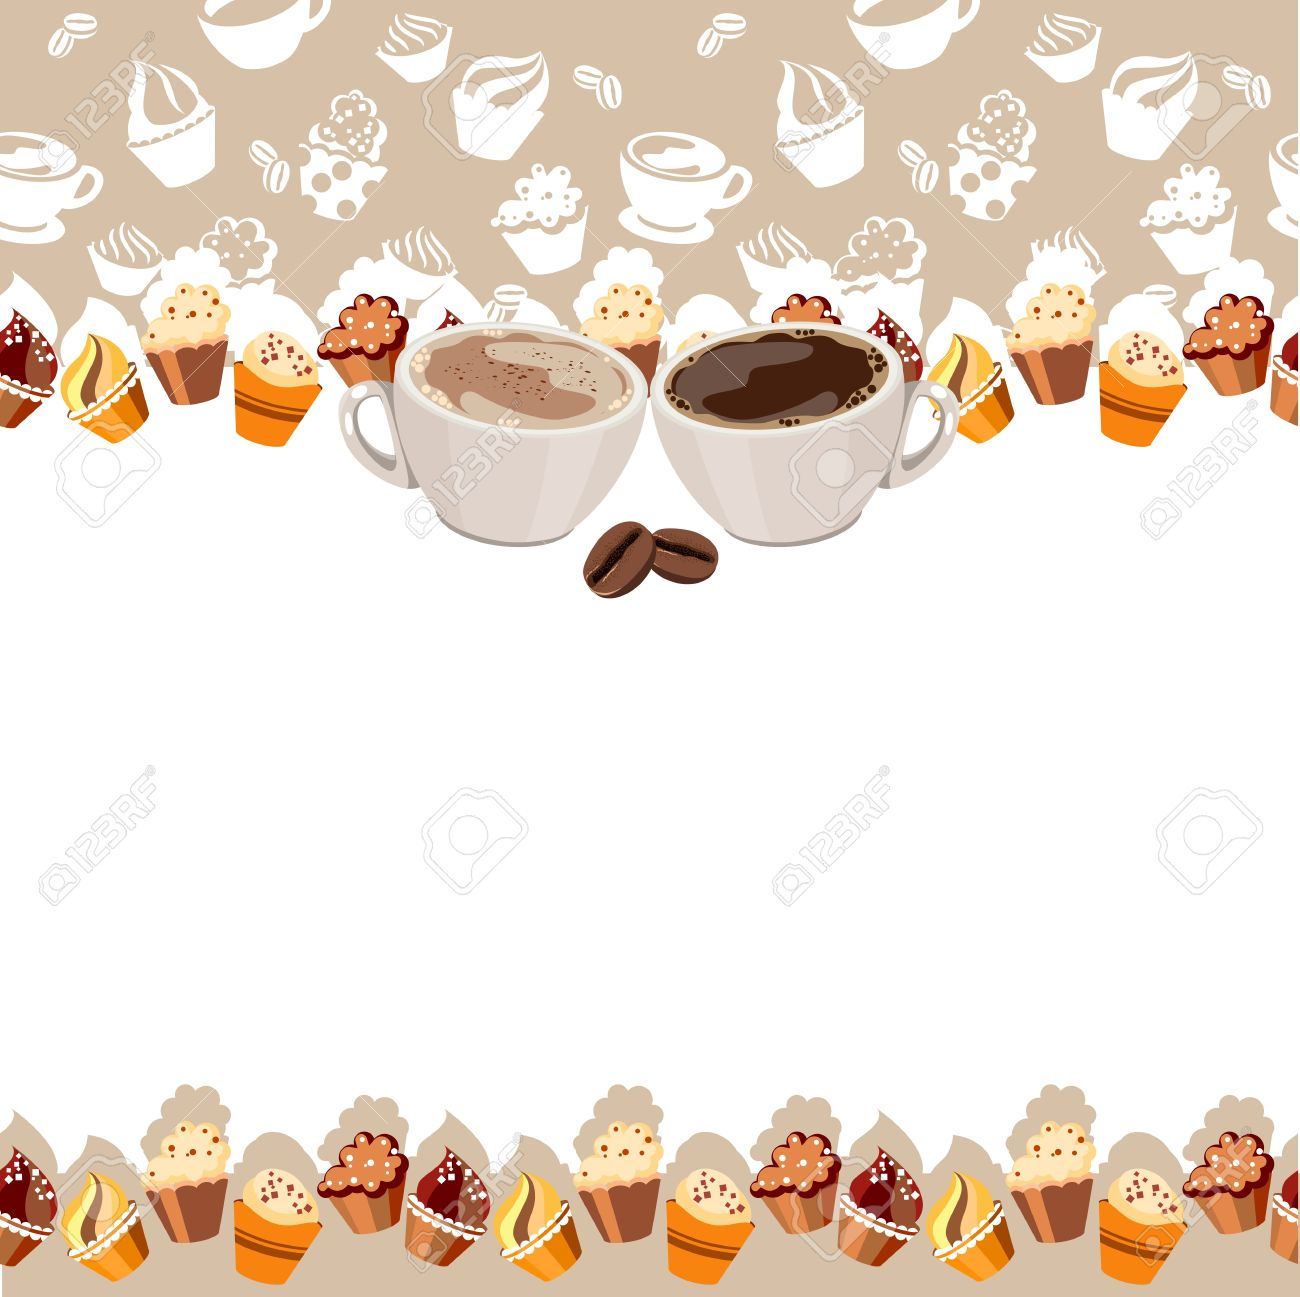 Greeting Card With Cups Of Coffee Royalty Free Cliparts, Vectors.